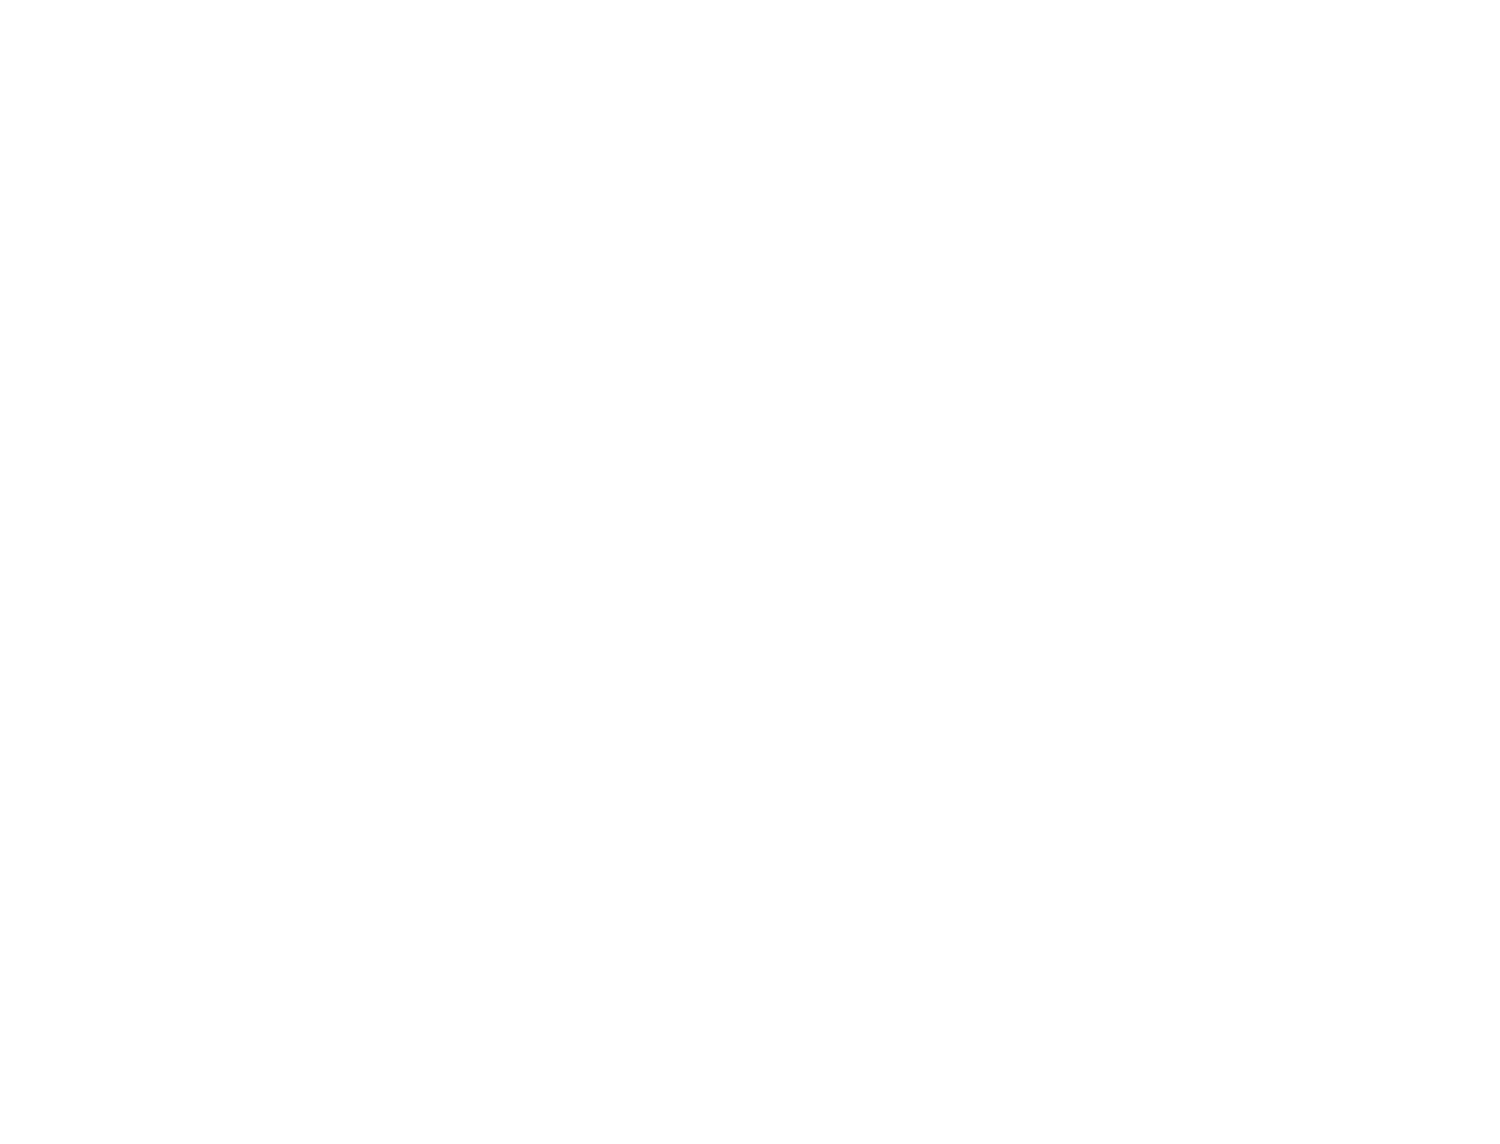 Barroom Philosophers